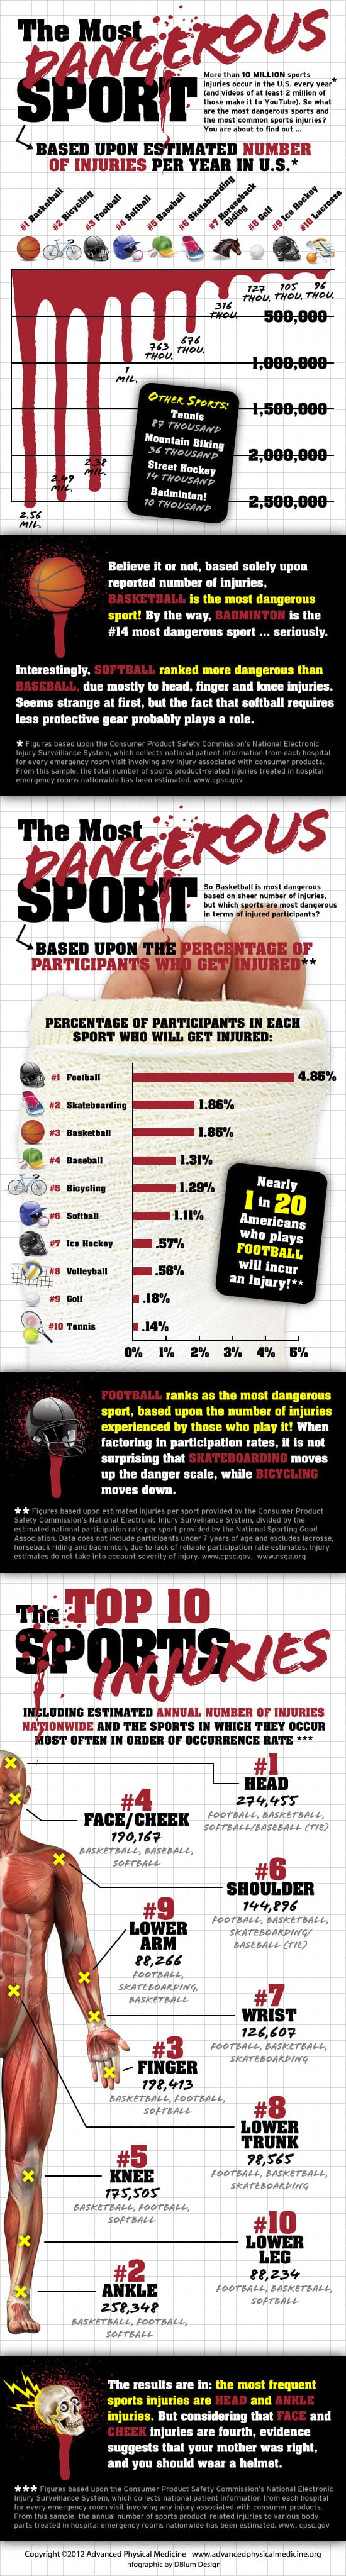 Most Dangerous Sports Infographic